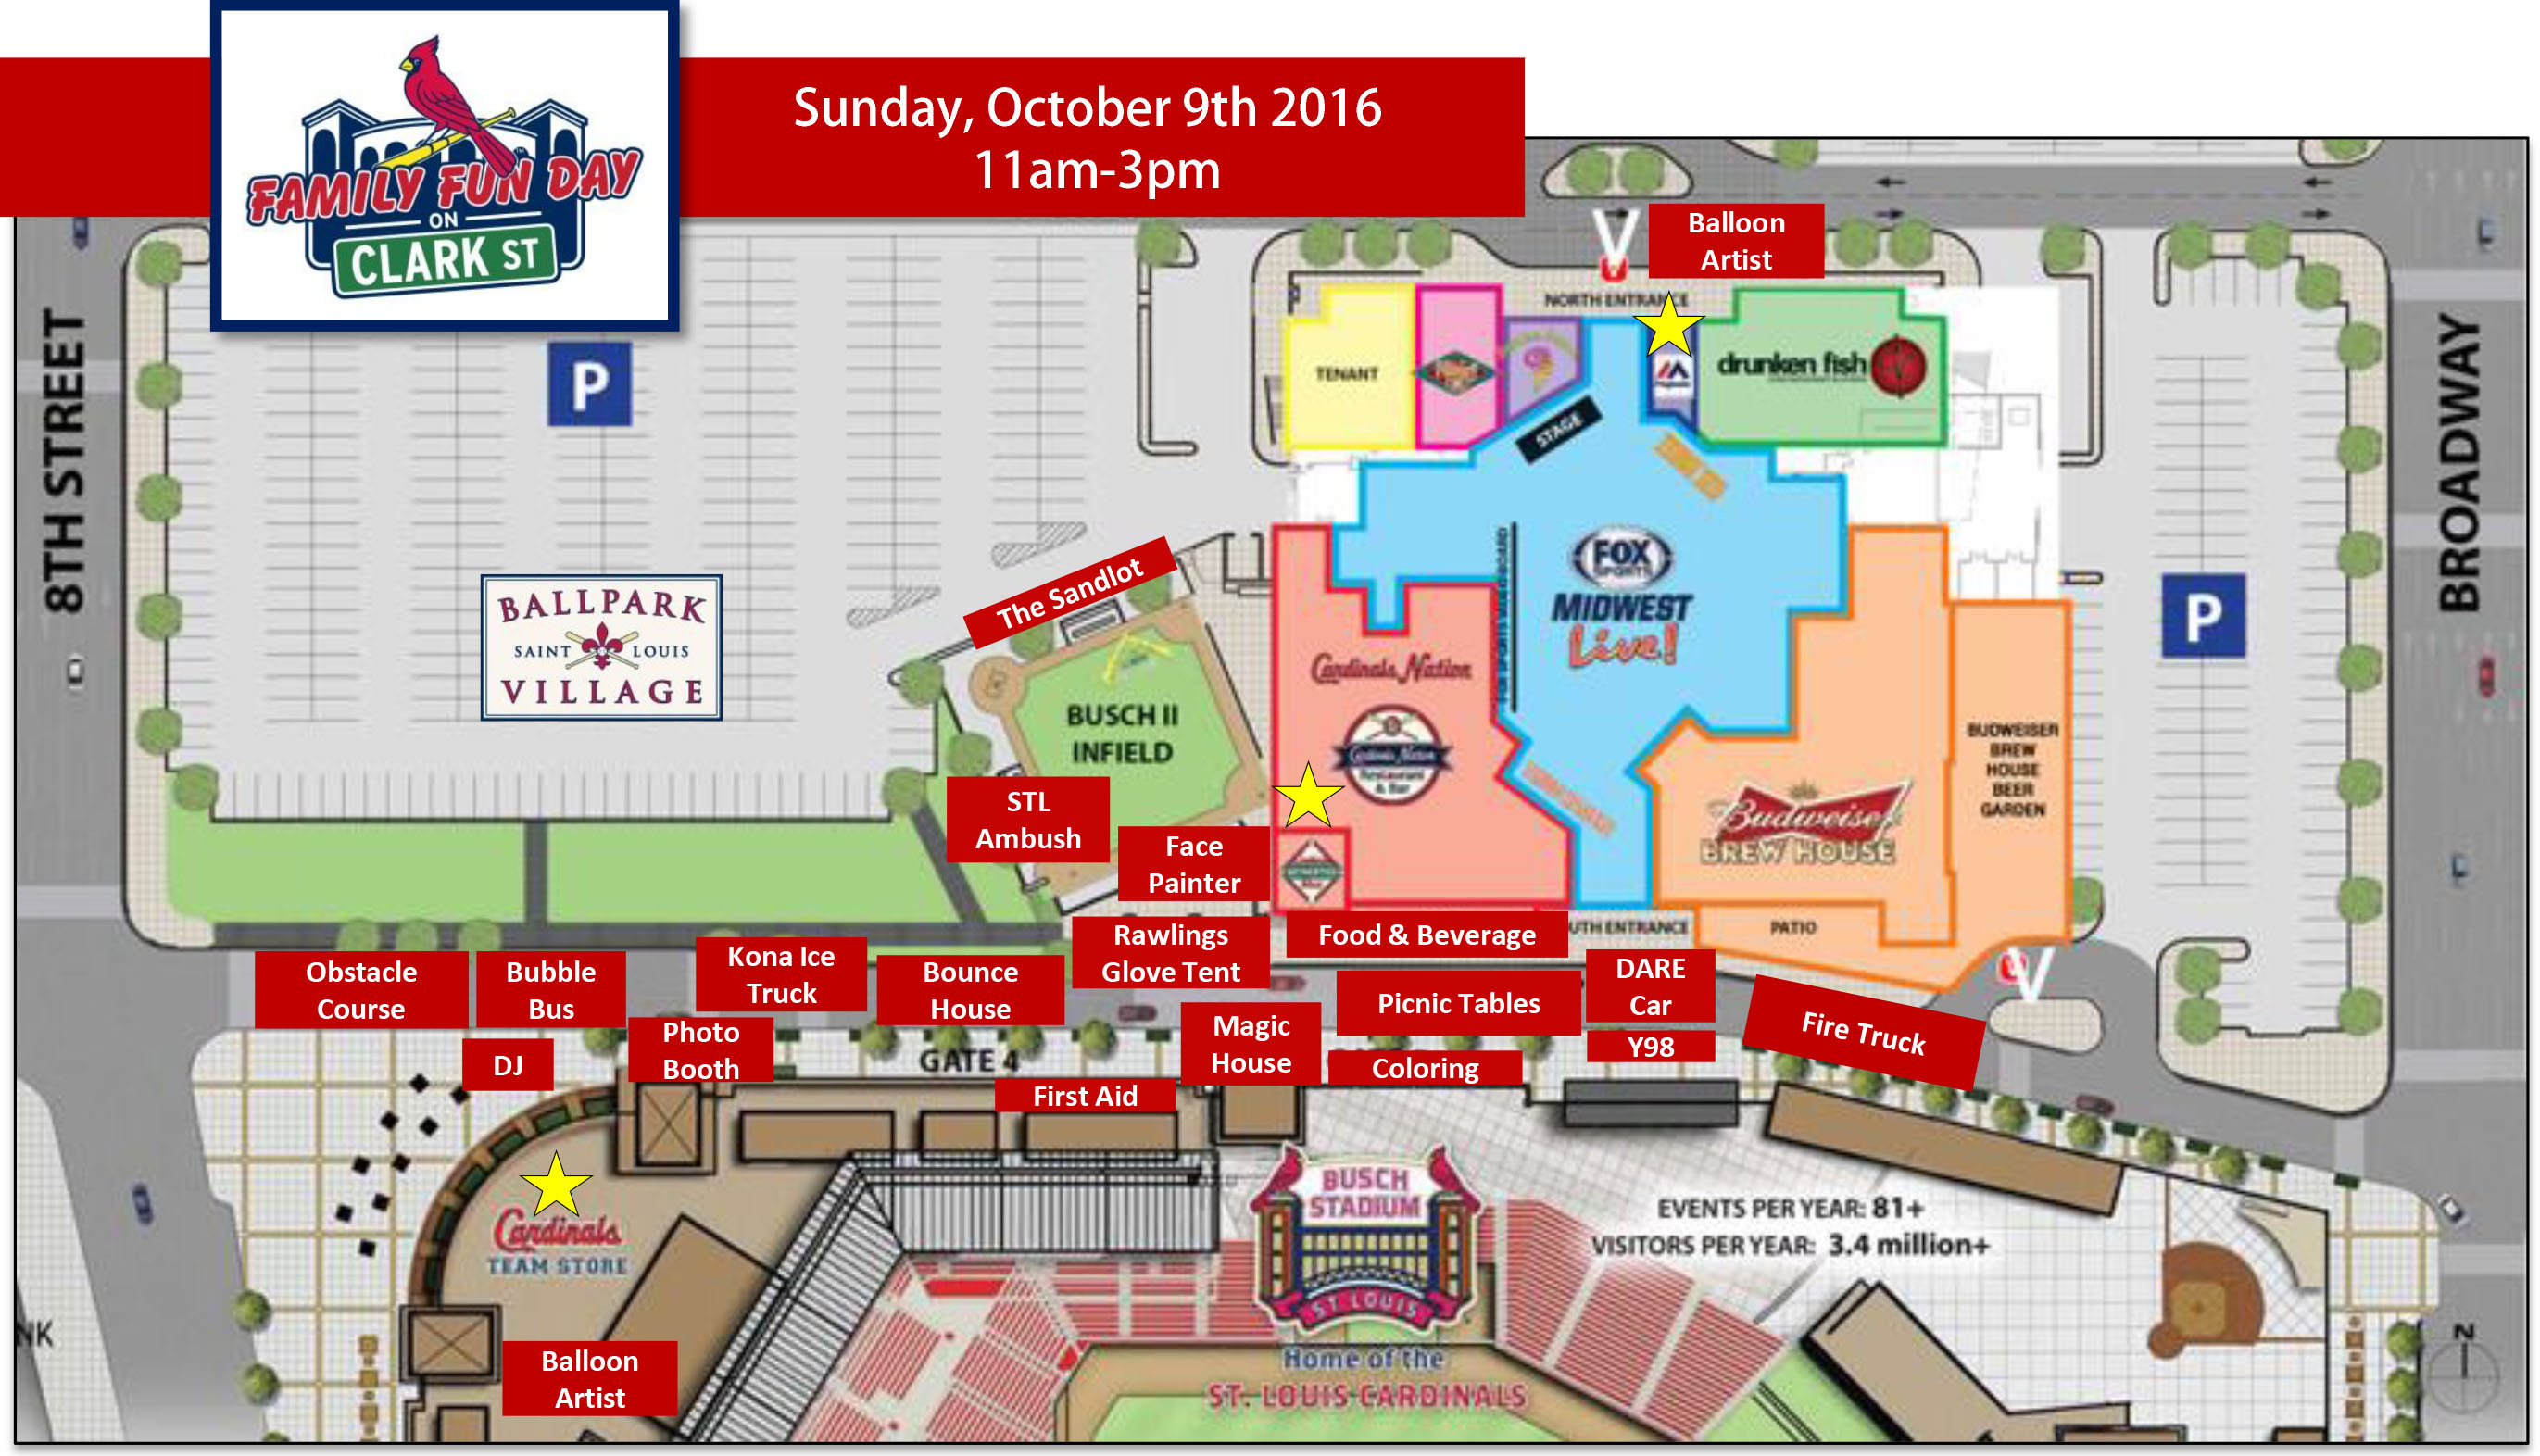 family fun day map of activities. family fun day on clark street  mlbcom